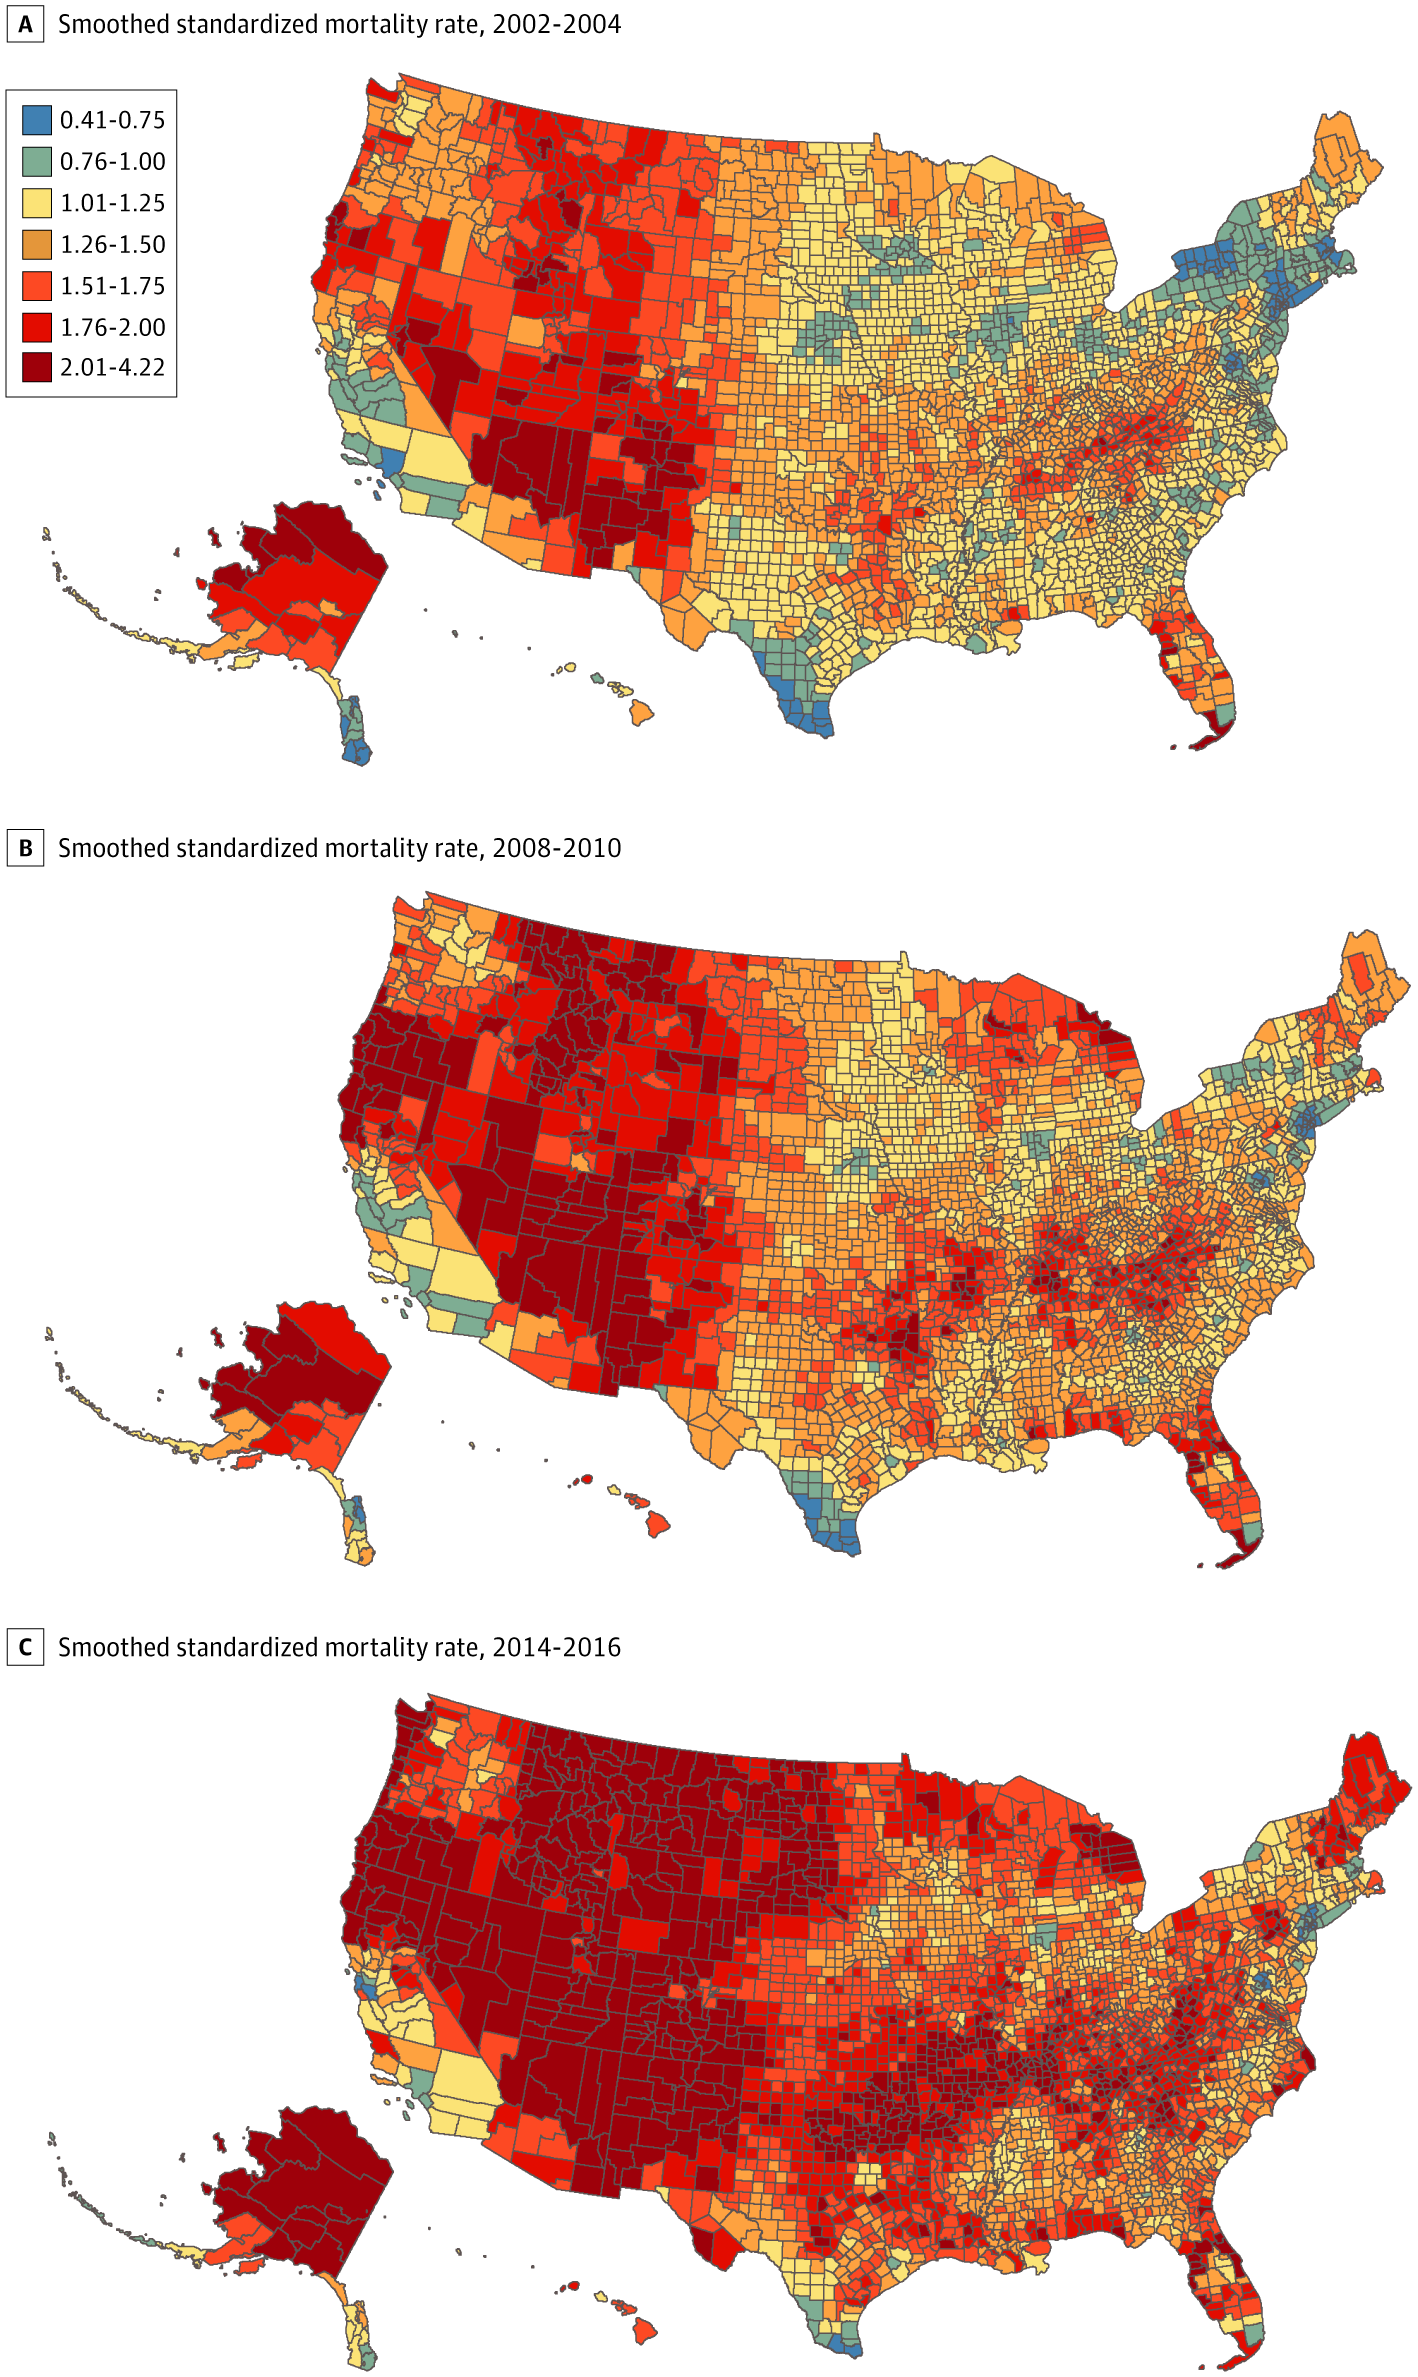 Contextual Factors Associated With County-Level Suicide Rates in the United States